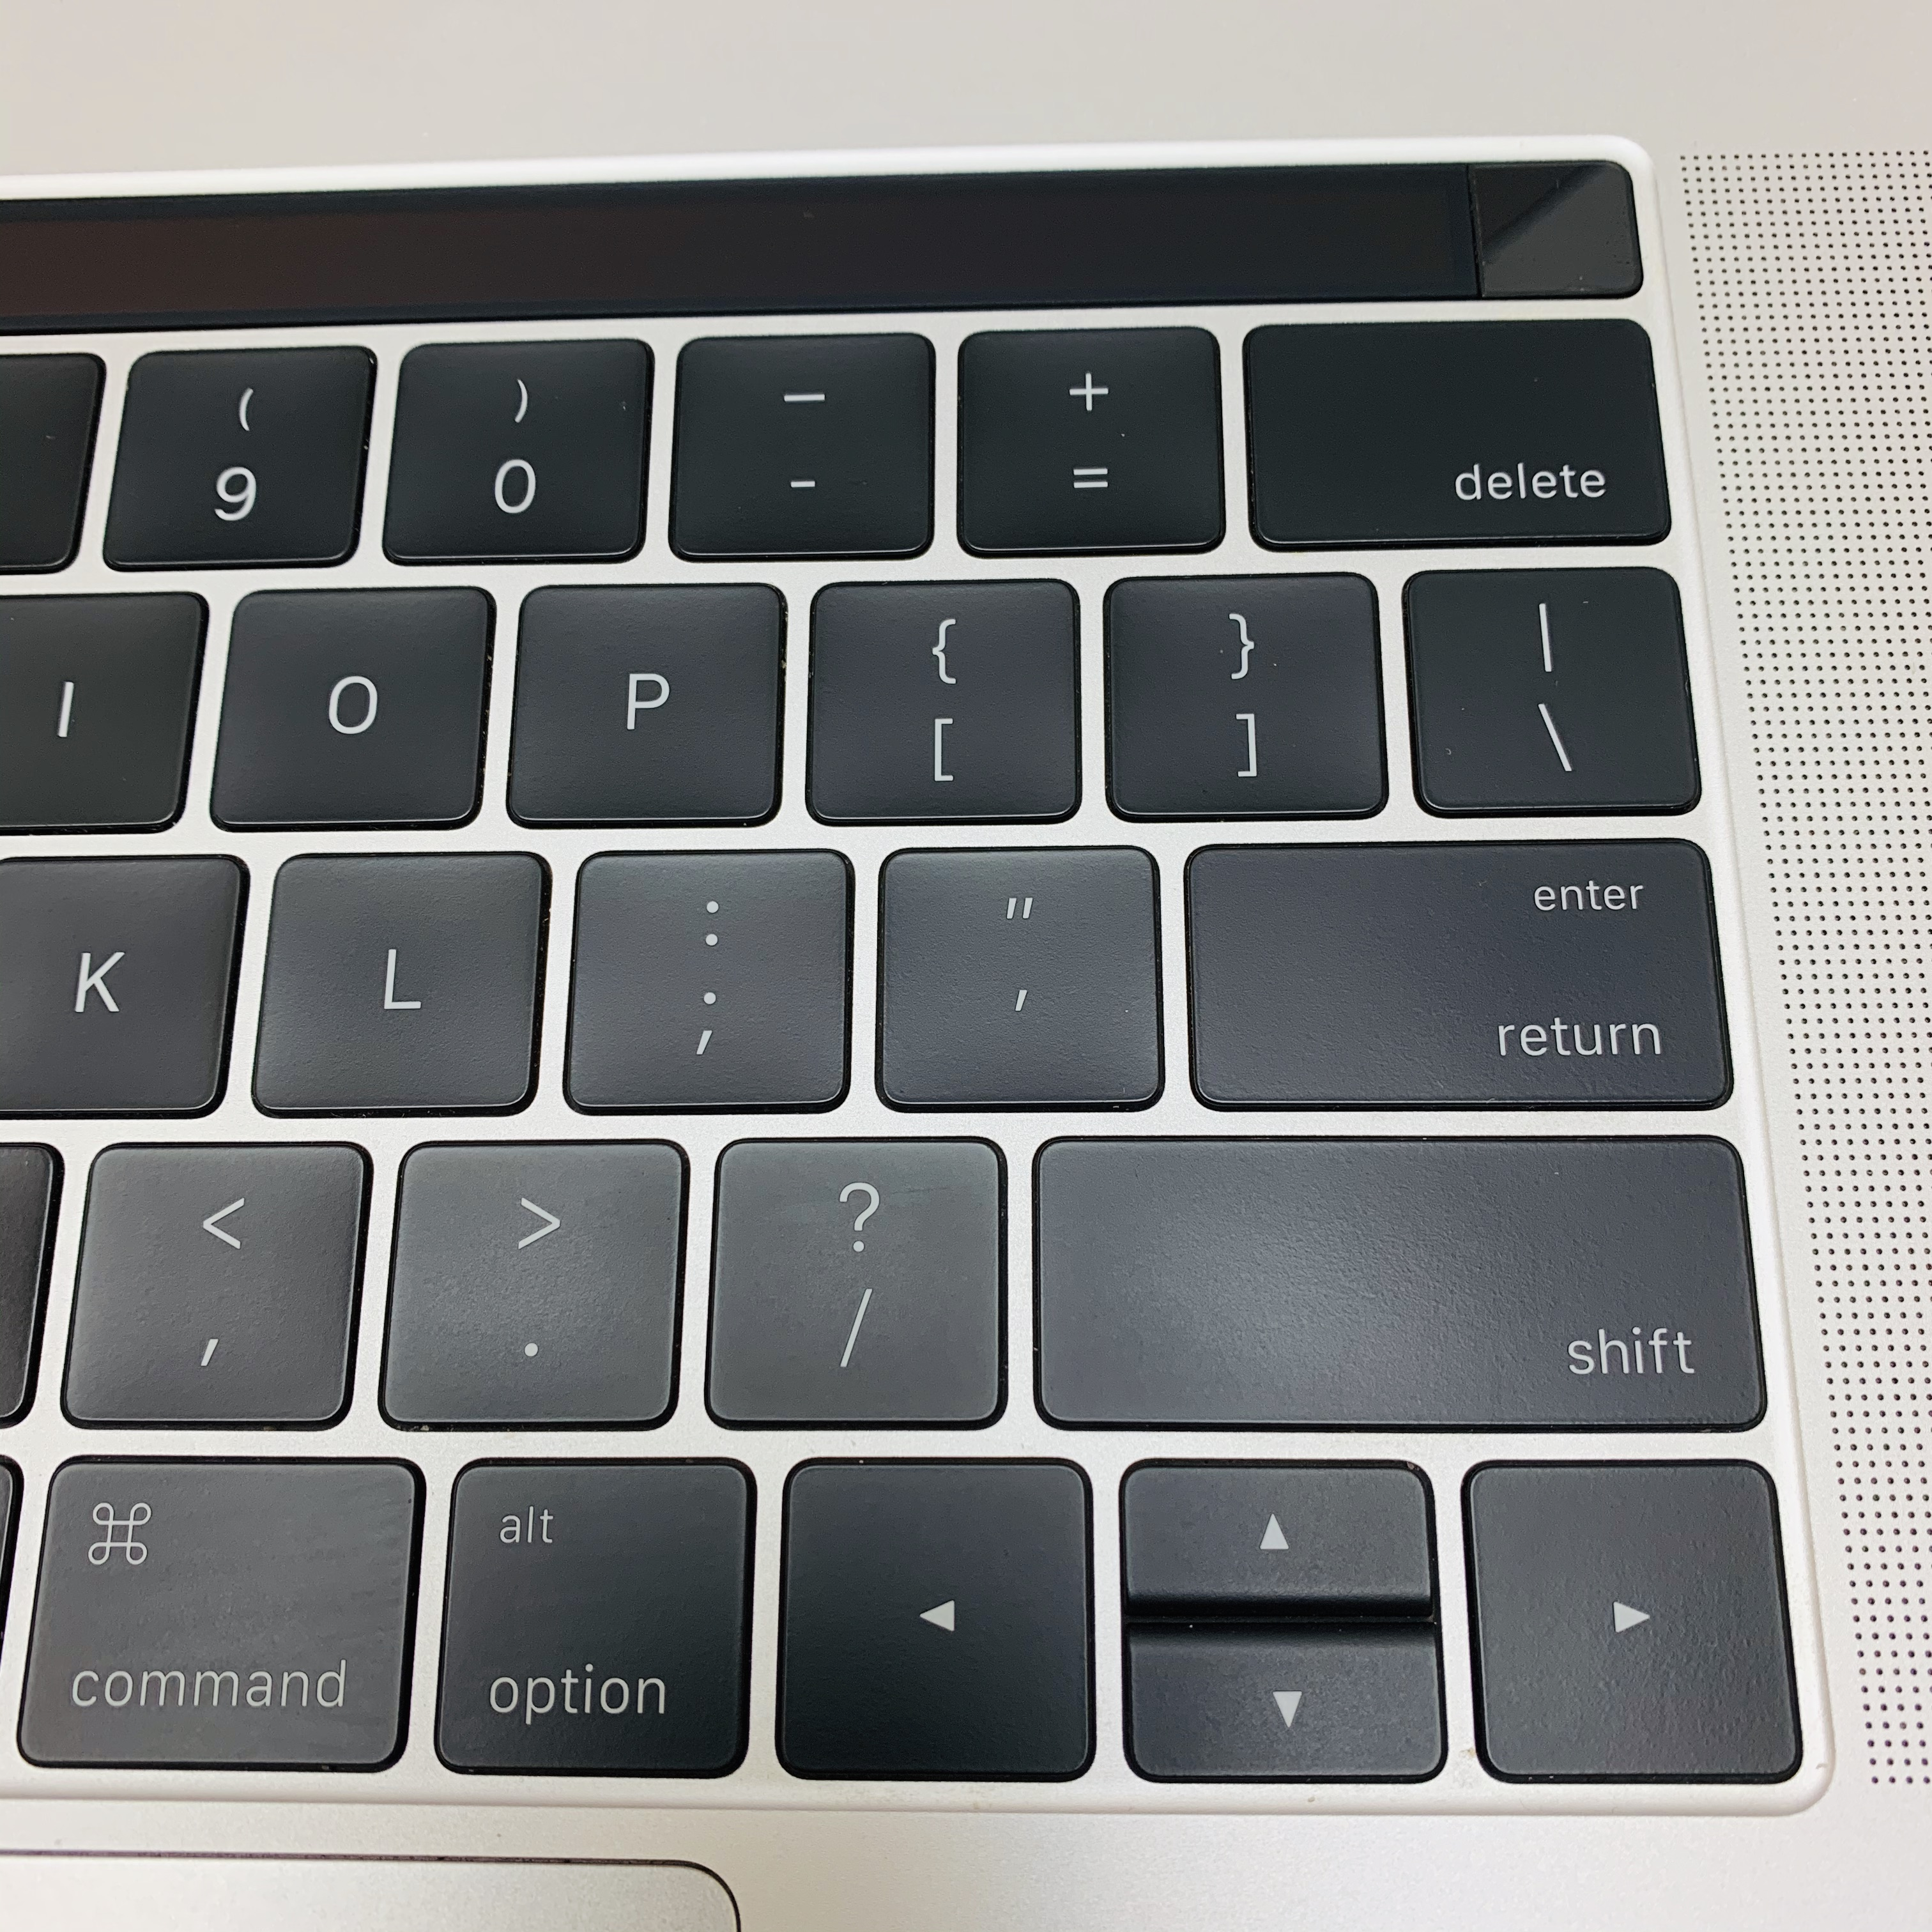 "MacBook Pro 15"" Touch Bar Late 2016 (Intel Quad-Core i7 2.7 GHz 16 GB RAM 512 GB SSD), Silver, Intel Quad-Core i7 2.7 GHz, 16 GB RAM, 512 GB SSD, image 3"